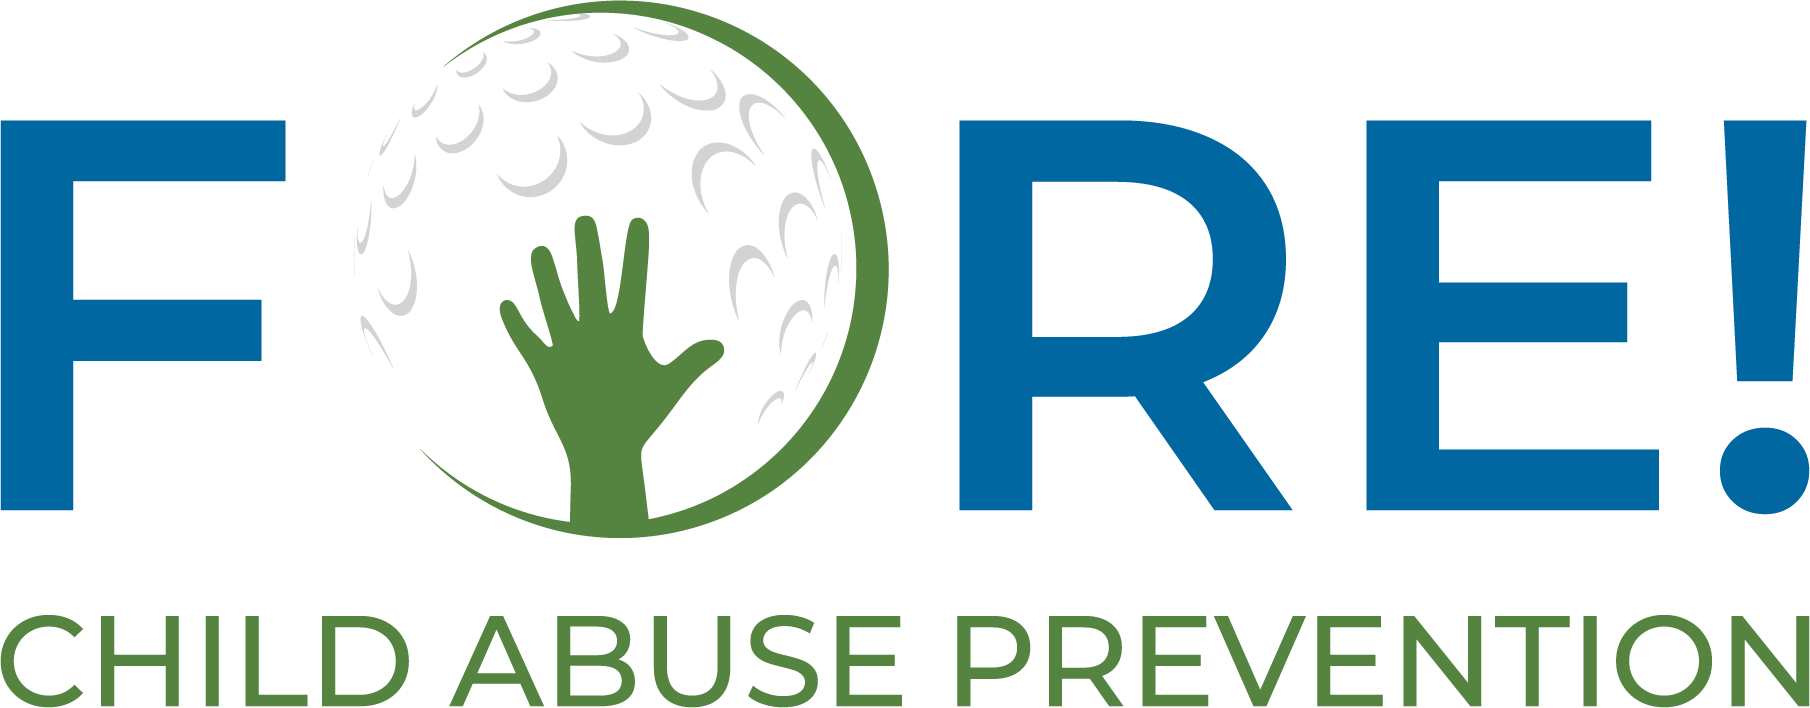 FORE! Child Abuse Prevention logo